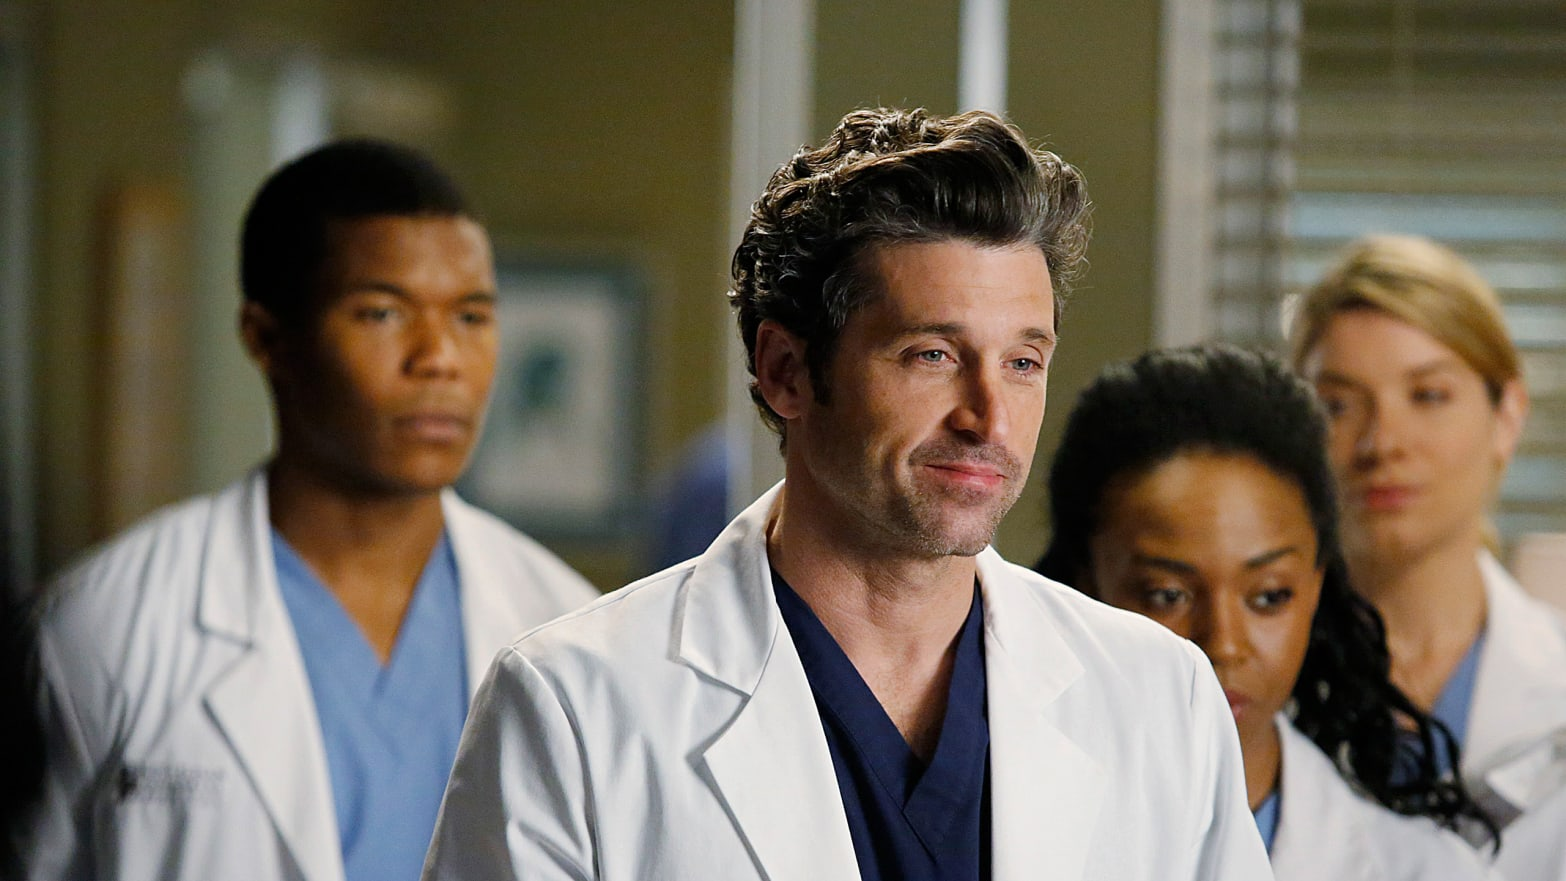 The Shocking Greys Anatomy Death That Had A Nation Weeping